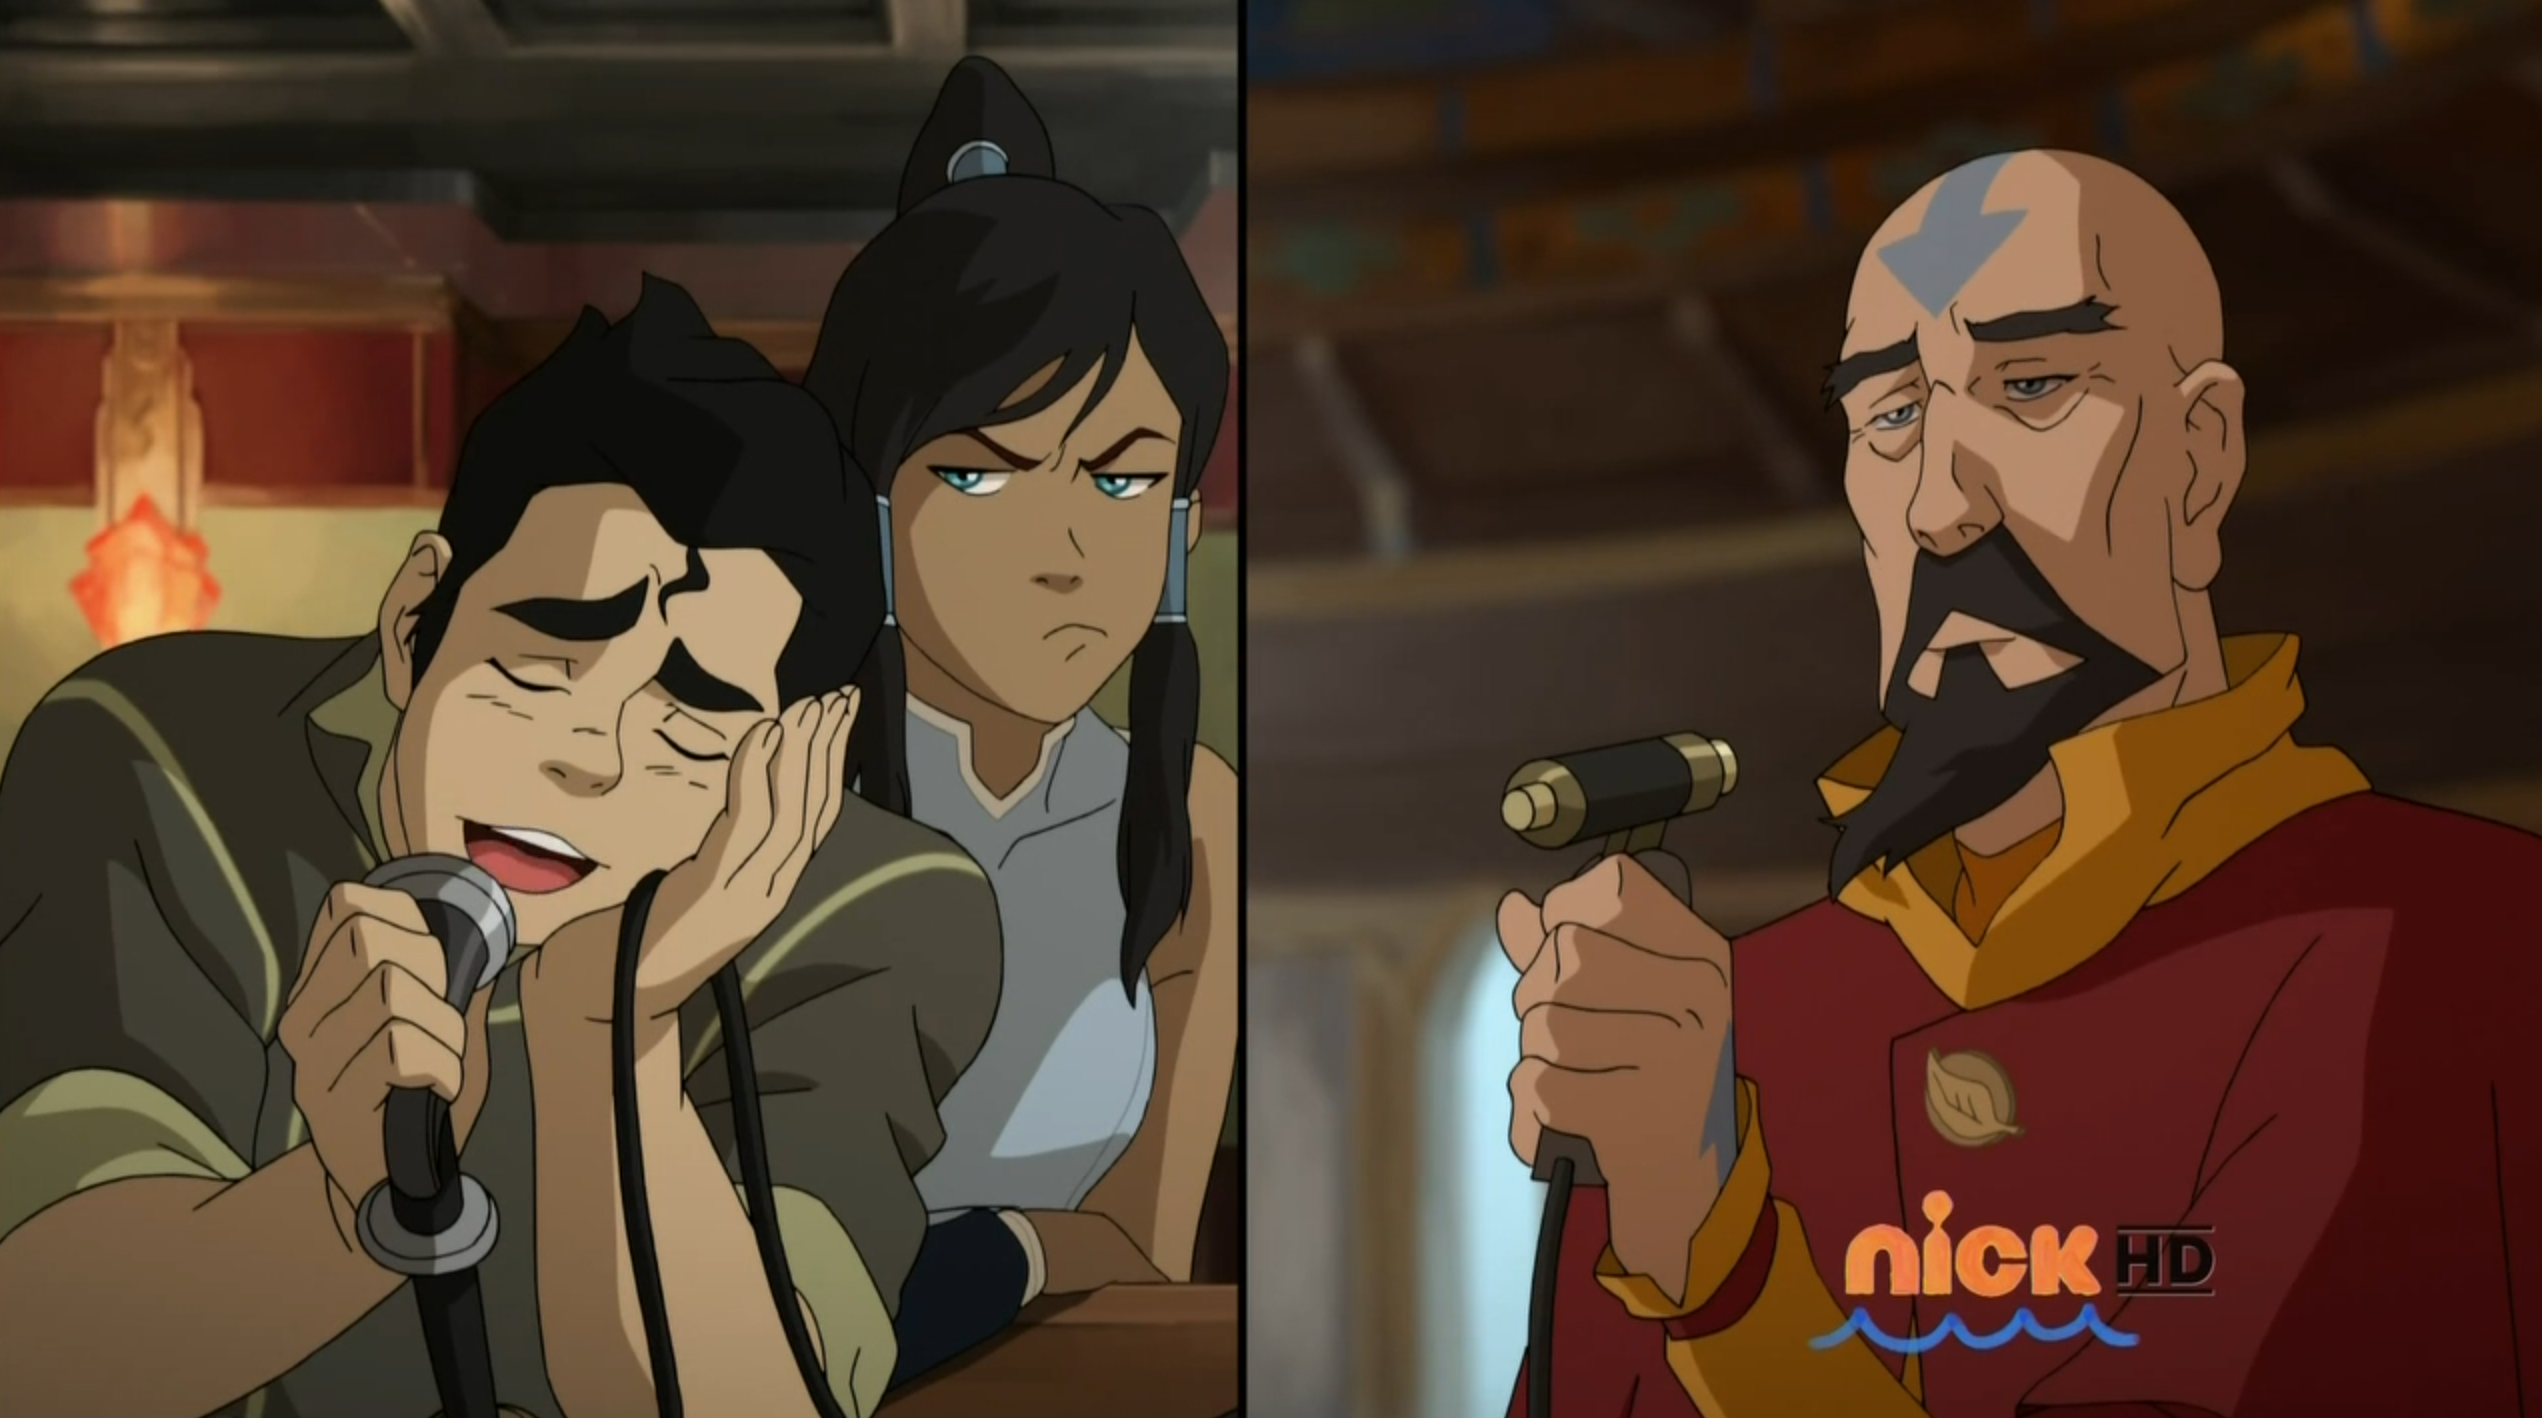 Noc Recaps The Legend Of Korra I Am The Son And The Air The Nerds